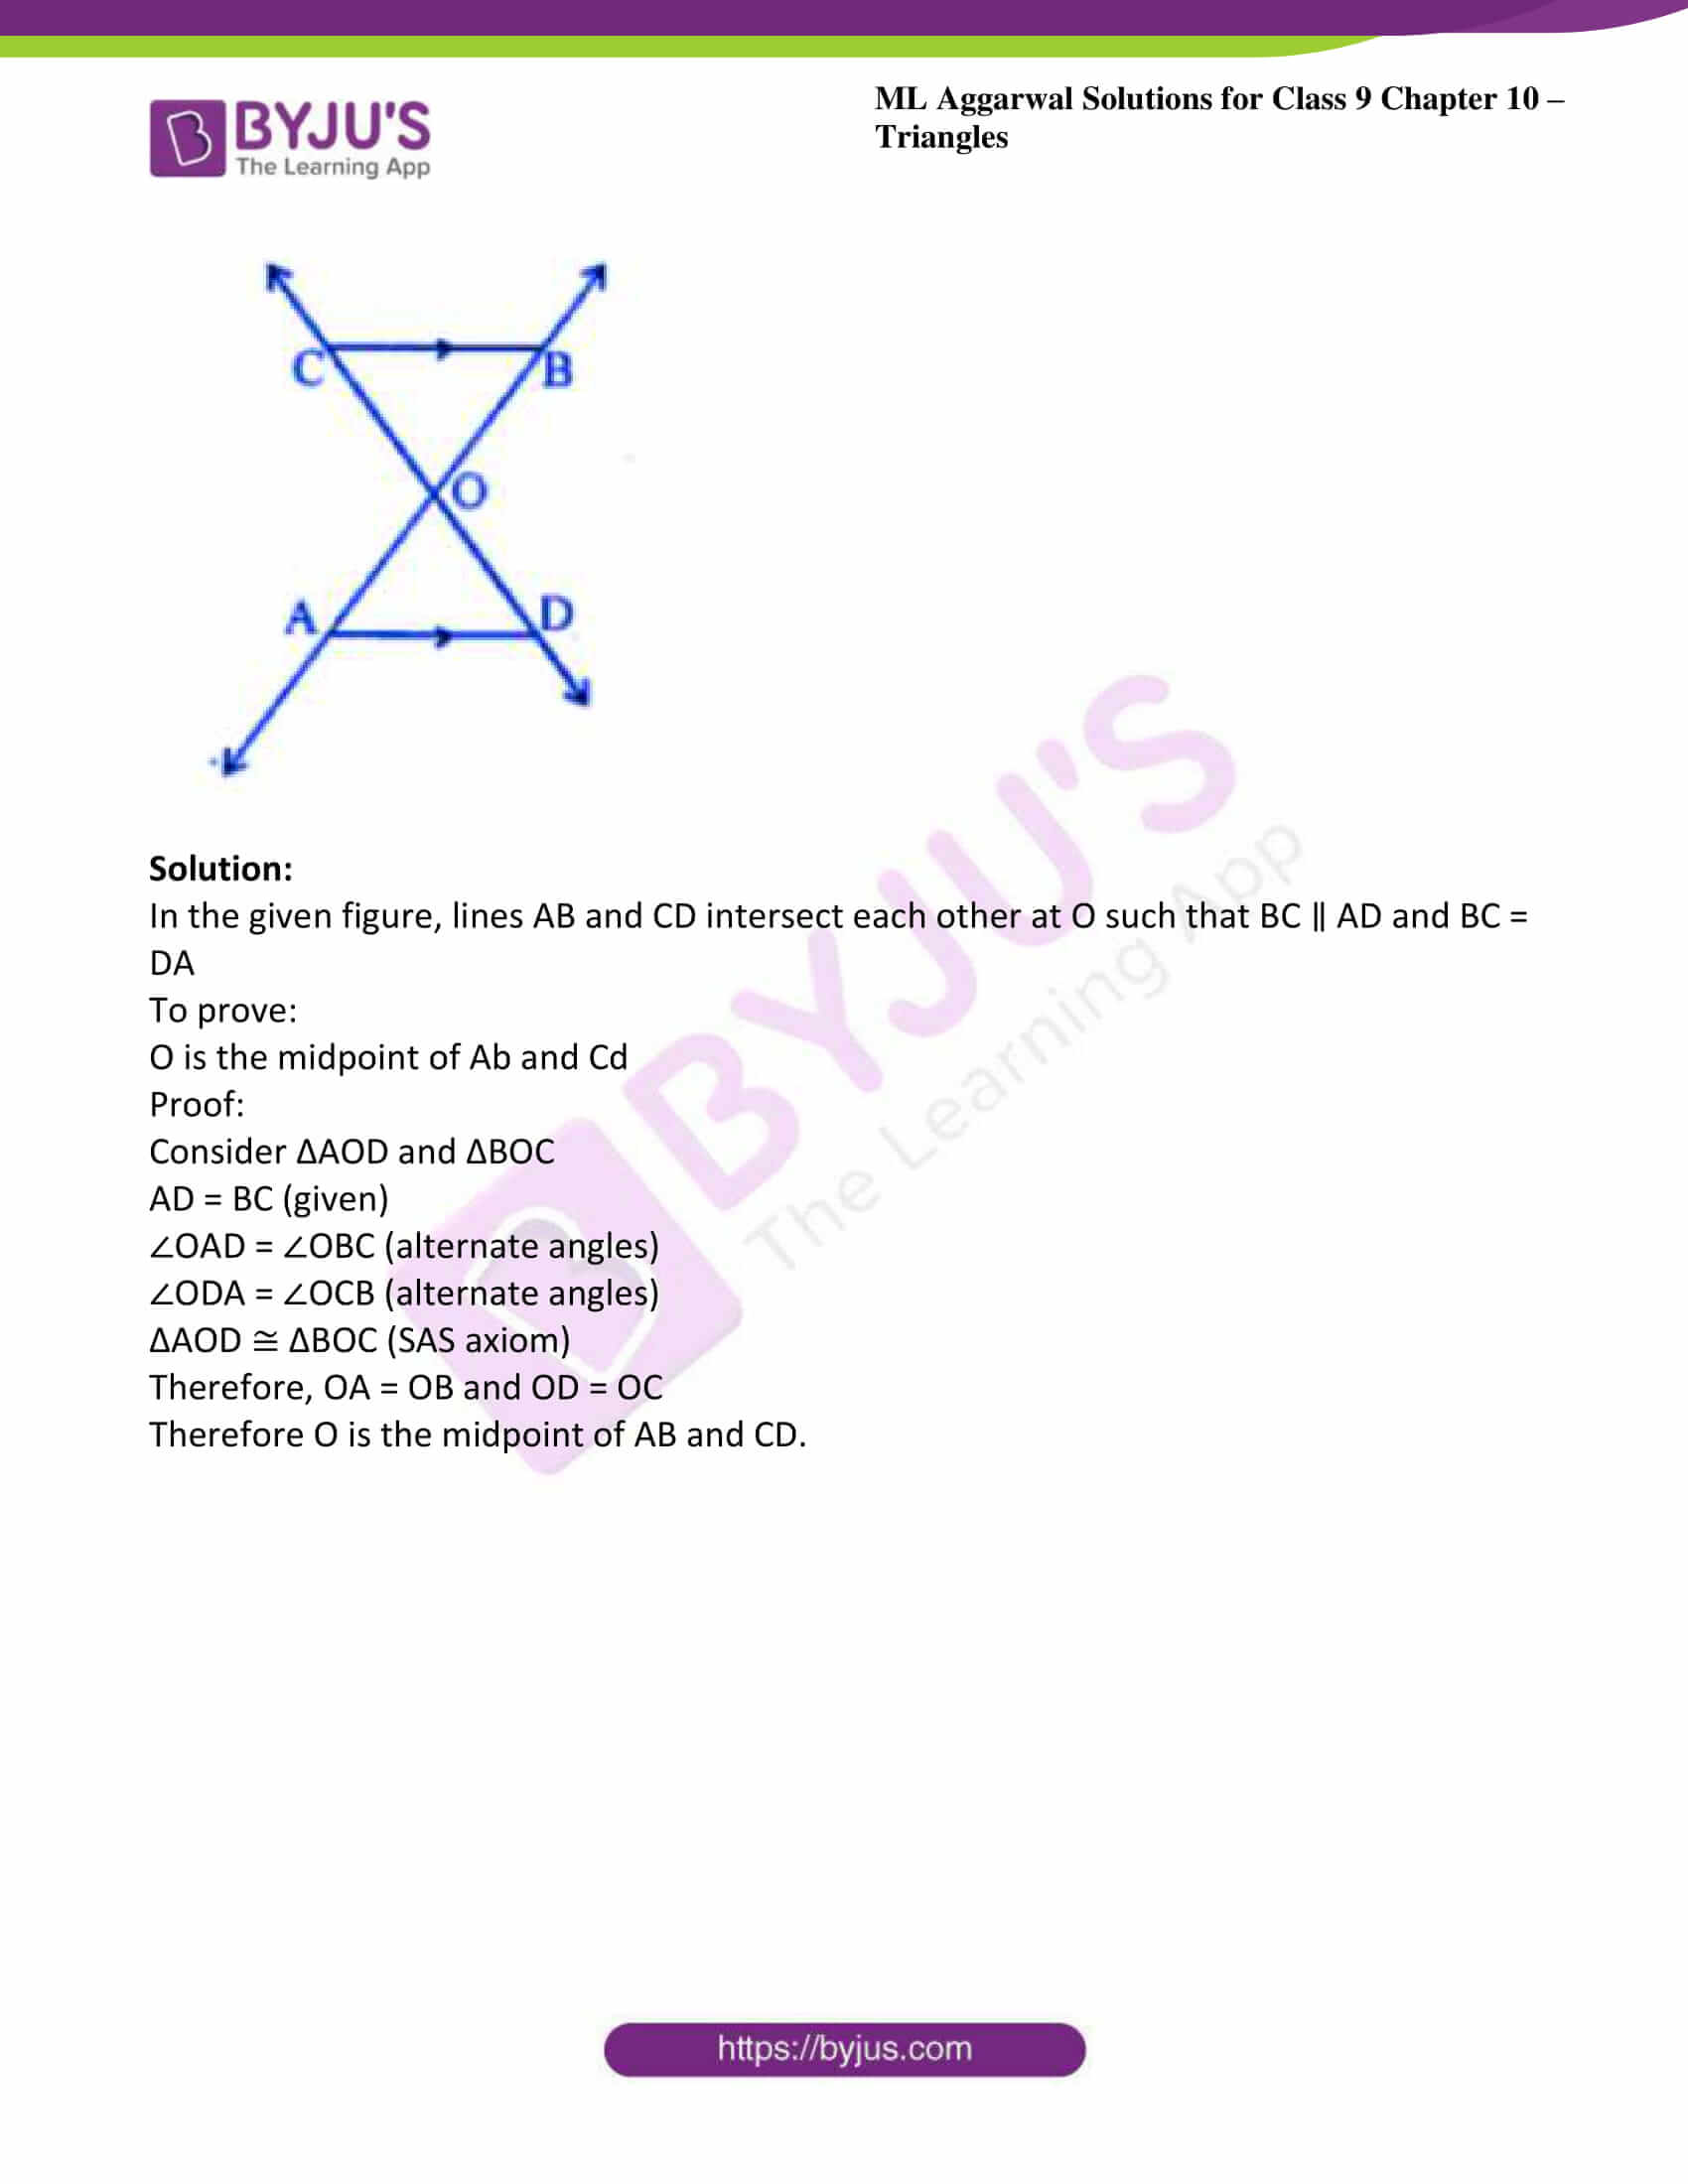 ml aggarwal solutions for class 9 maths chapter 10 14